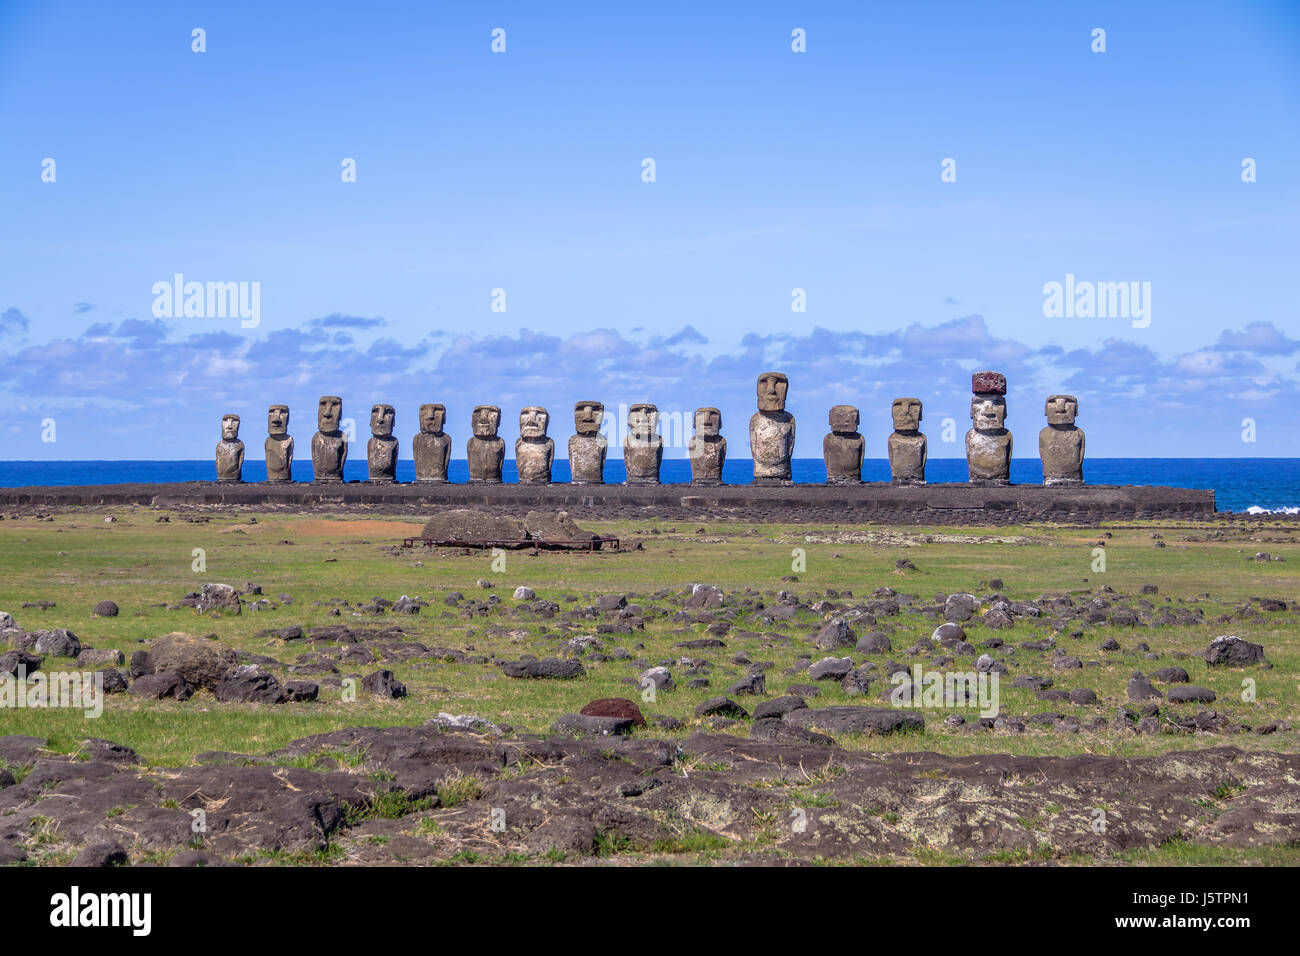 Moai Statues of Ahu Tongariki - Easter Island, Chile - Stock Image